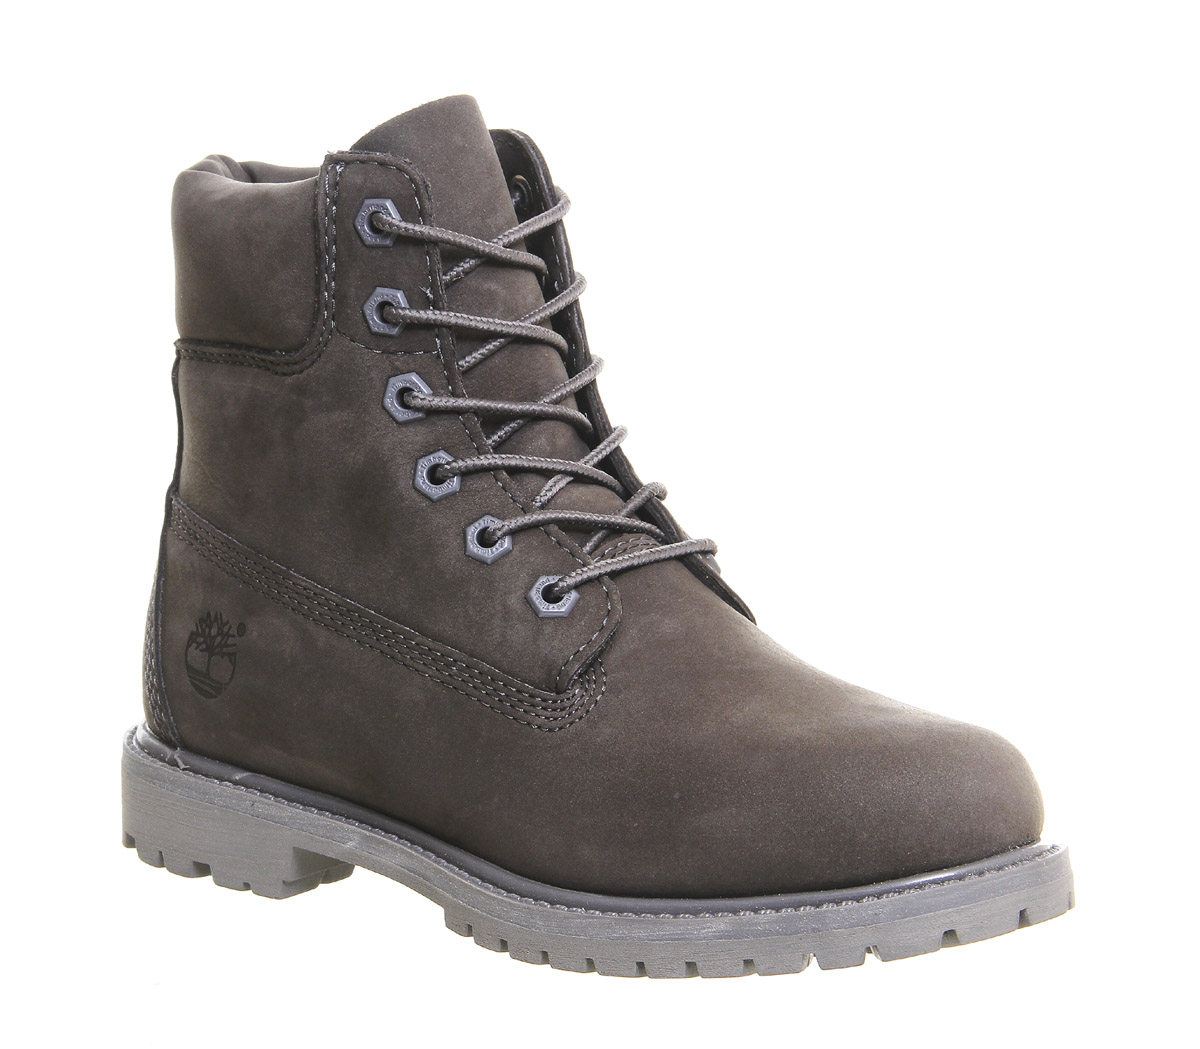 timberland boots womens grey